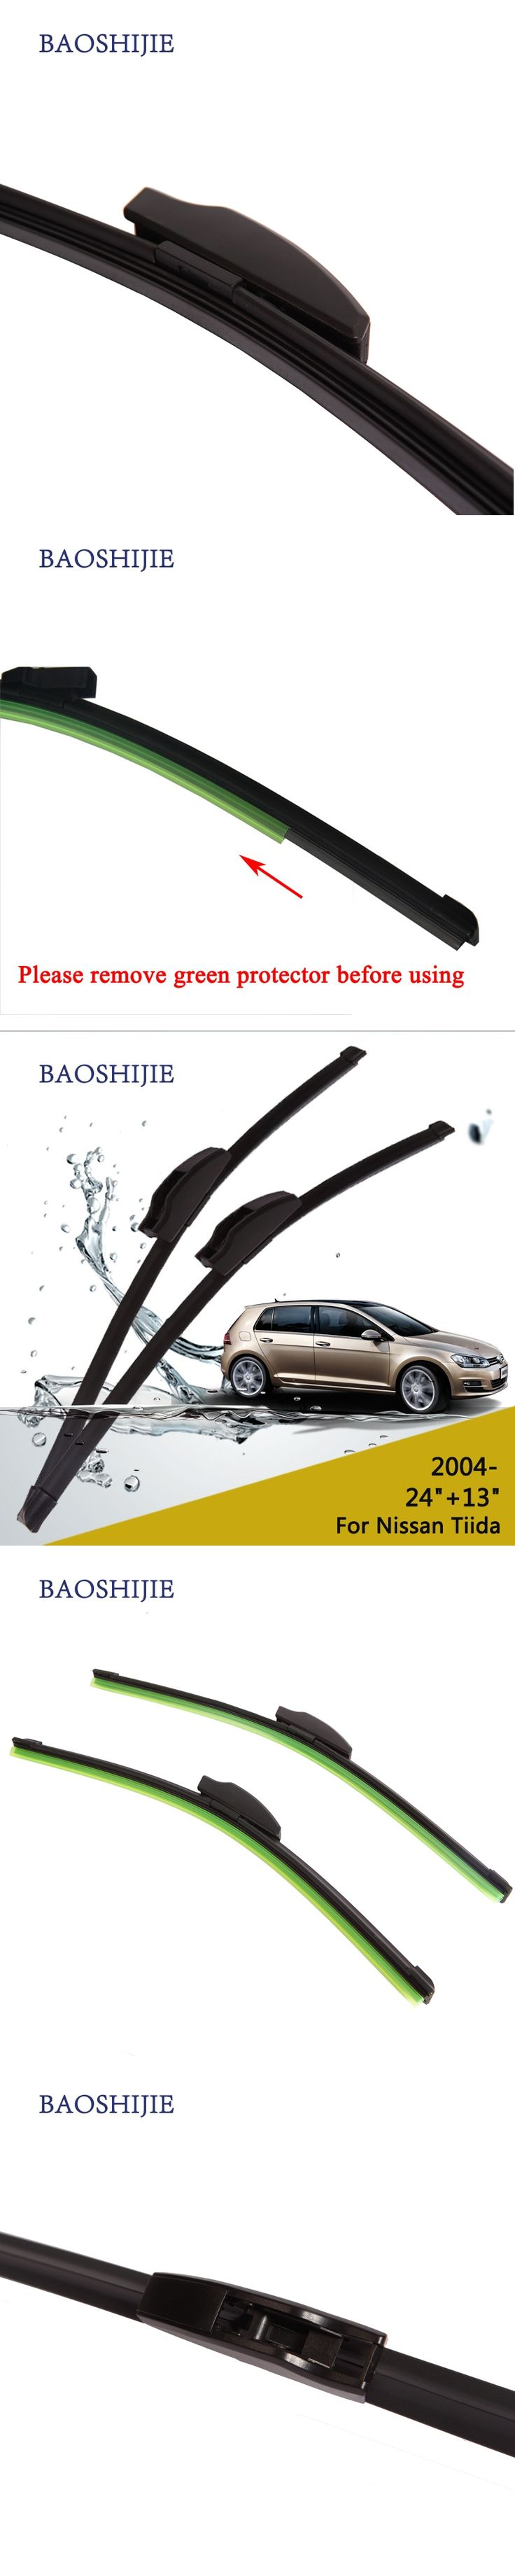 """Wiper blades for Nissan Tiida (from 2004 onwards) 24""""+13"""" fit standard J hook wiper arms"""